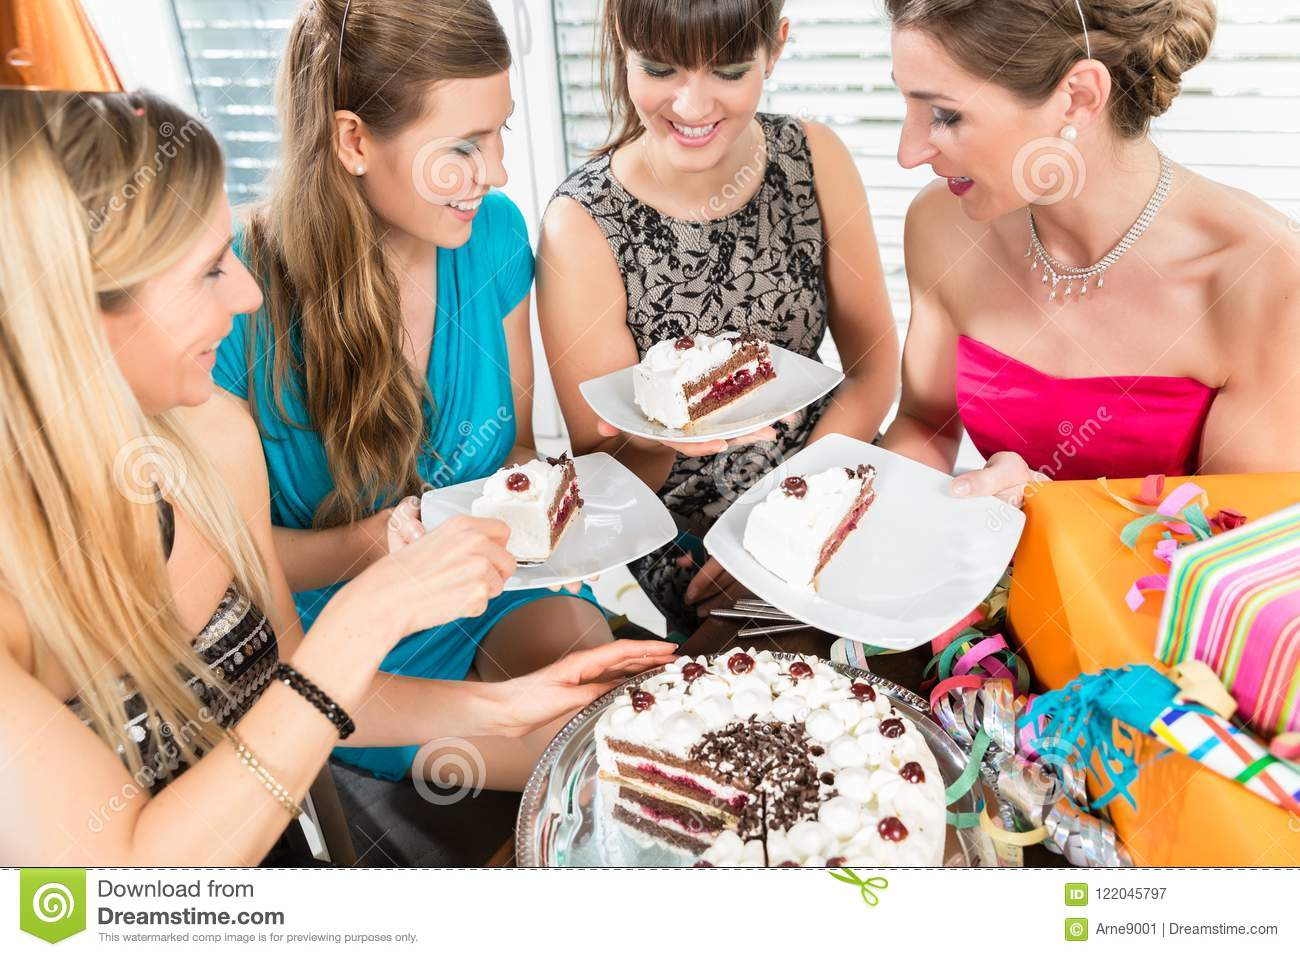 Four beautiful women and best friends smiling while sharing a birthday cake